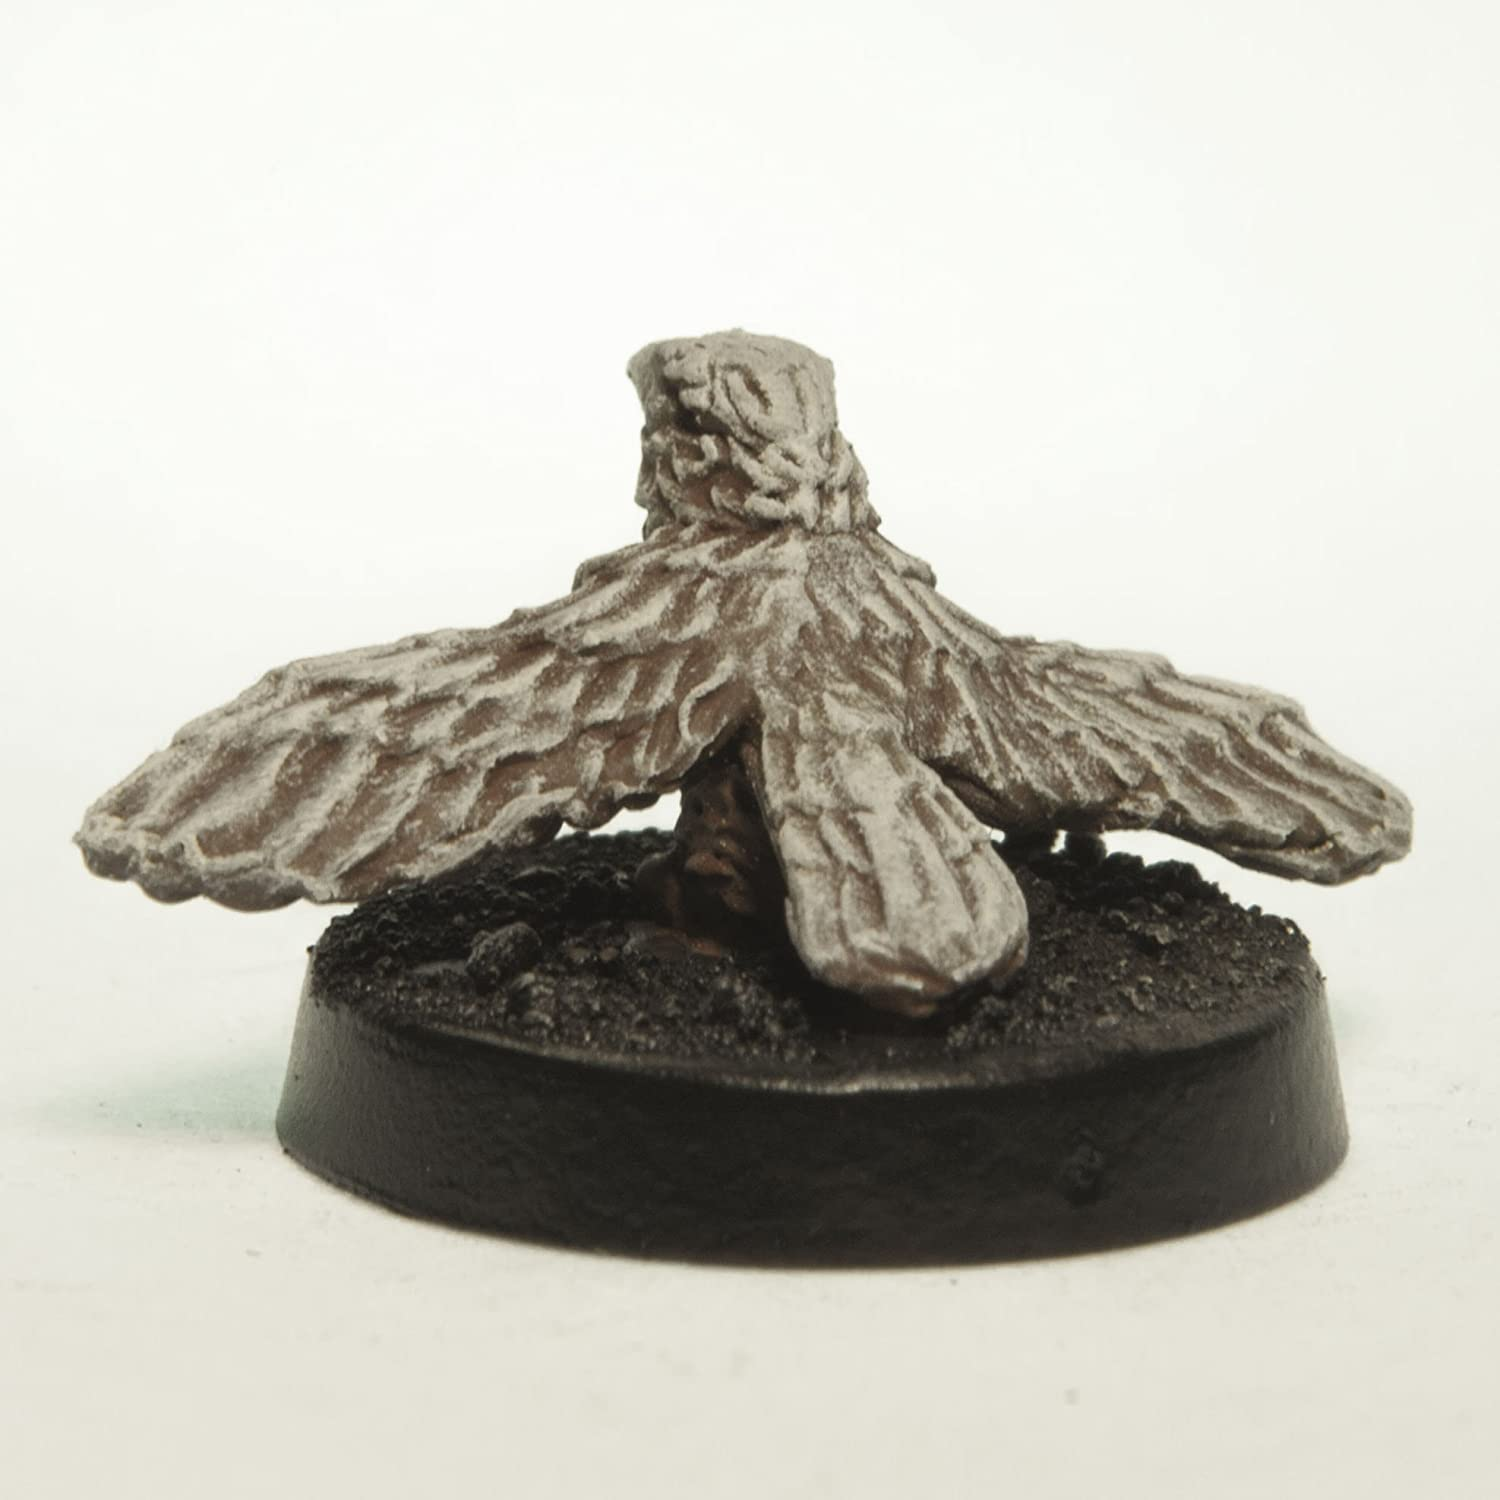 for 28mm Scale Table Top War Games Stonehaven Crow Miniature Figure Made in US Stonehaven Miniatures